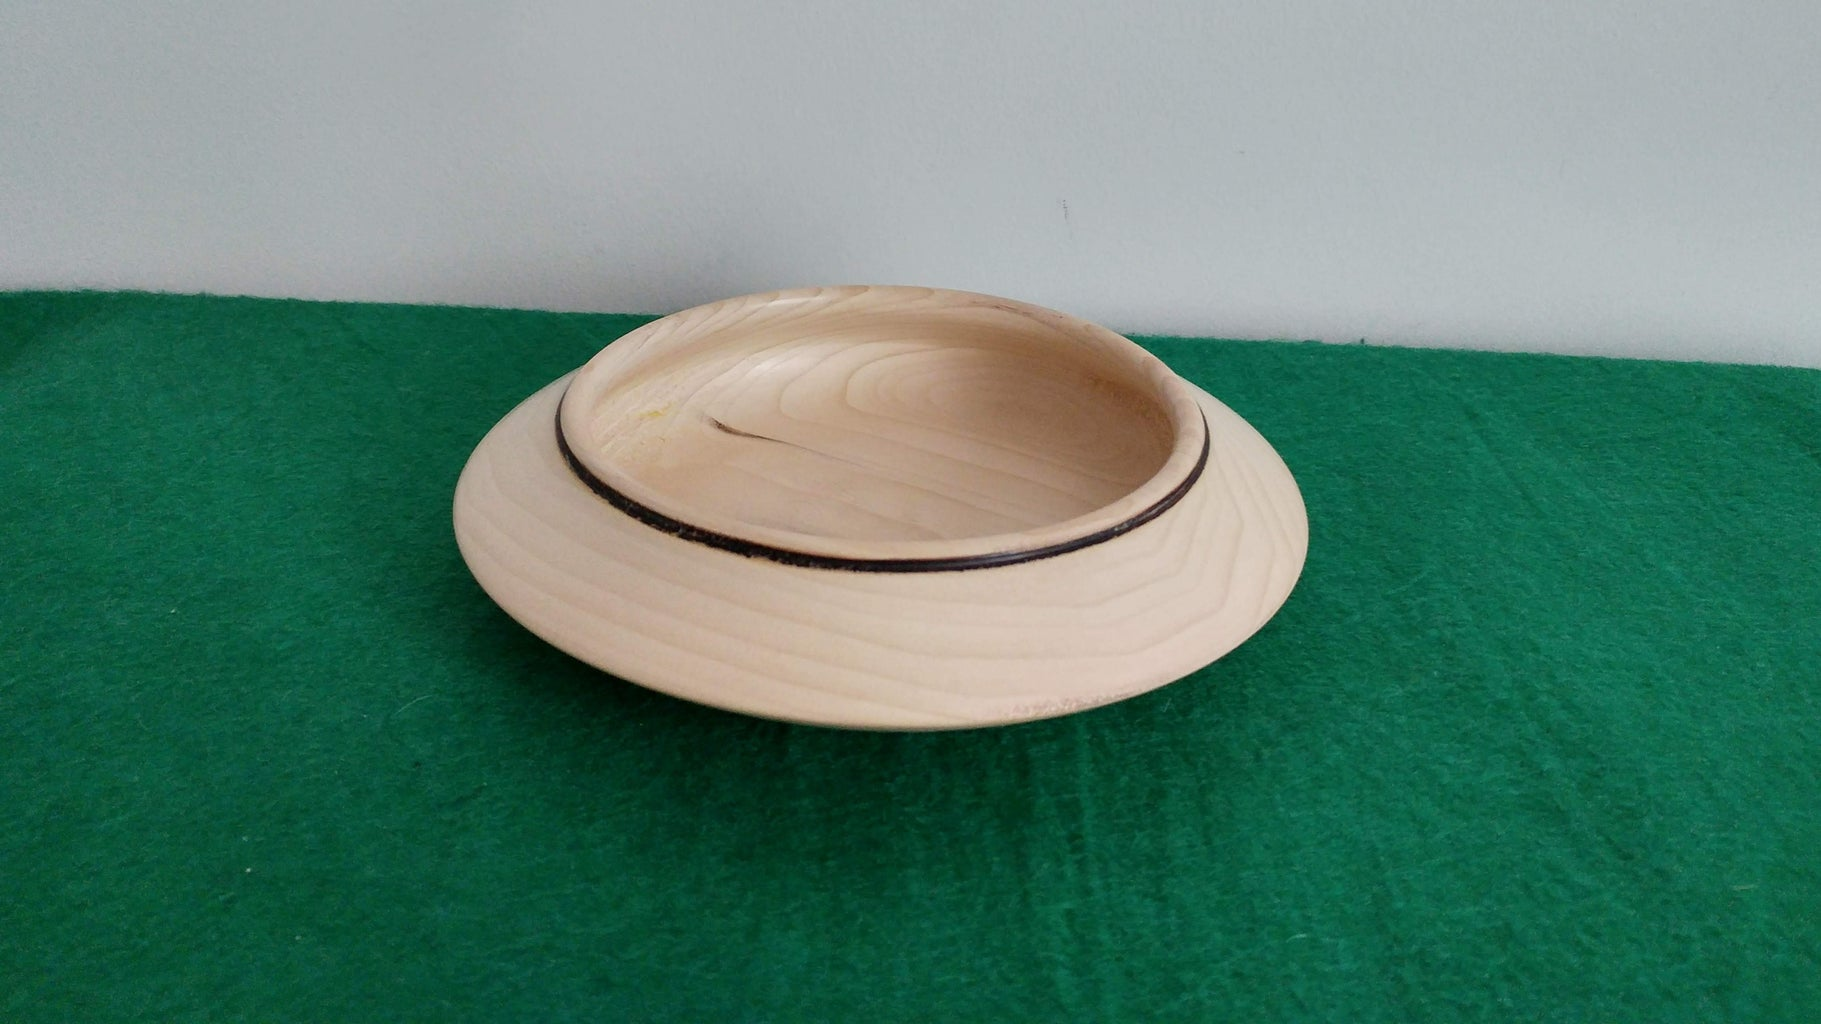 The Completed Bowl and Video